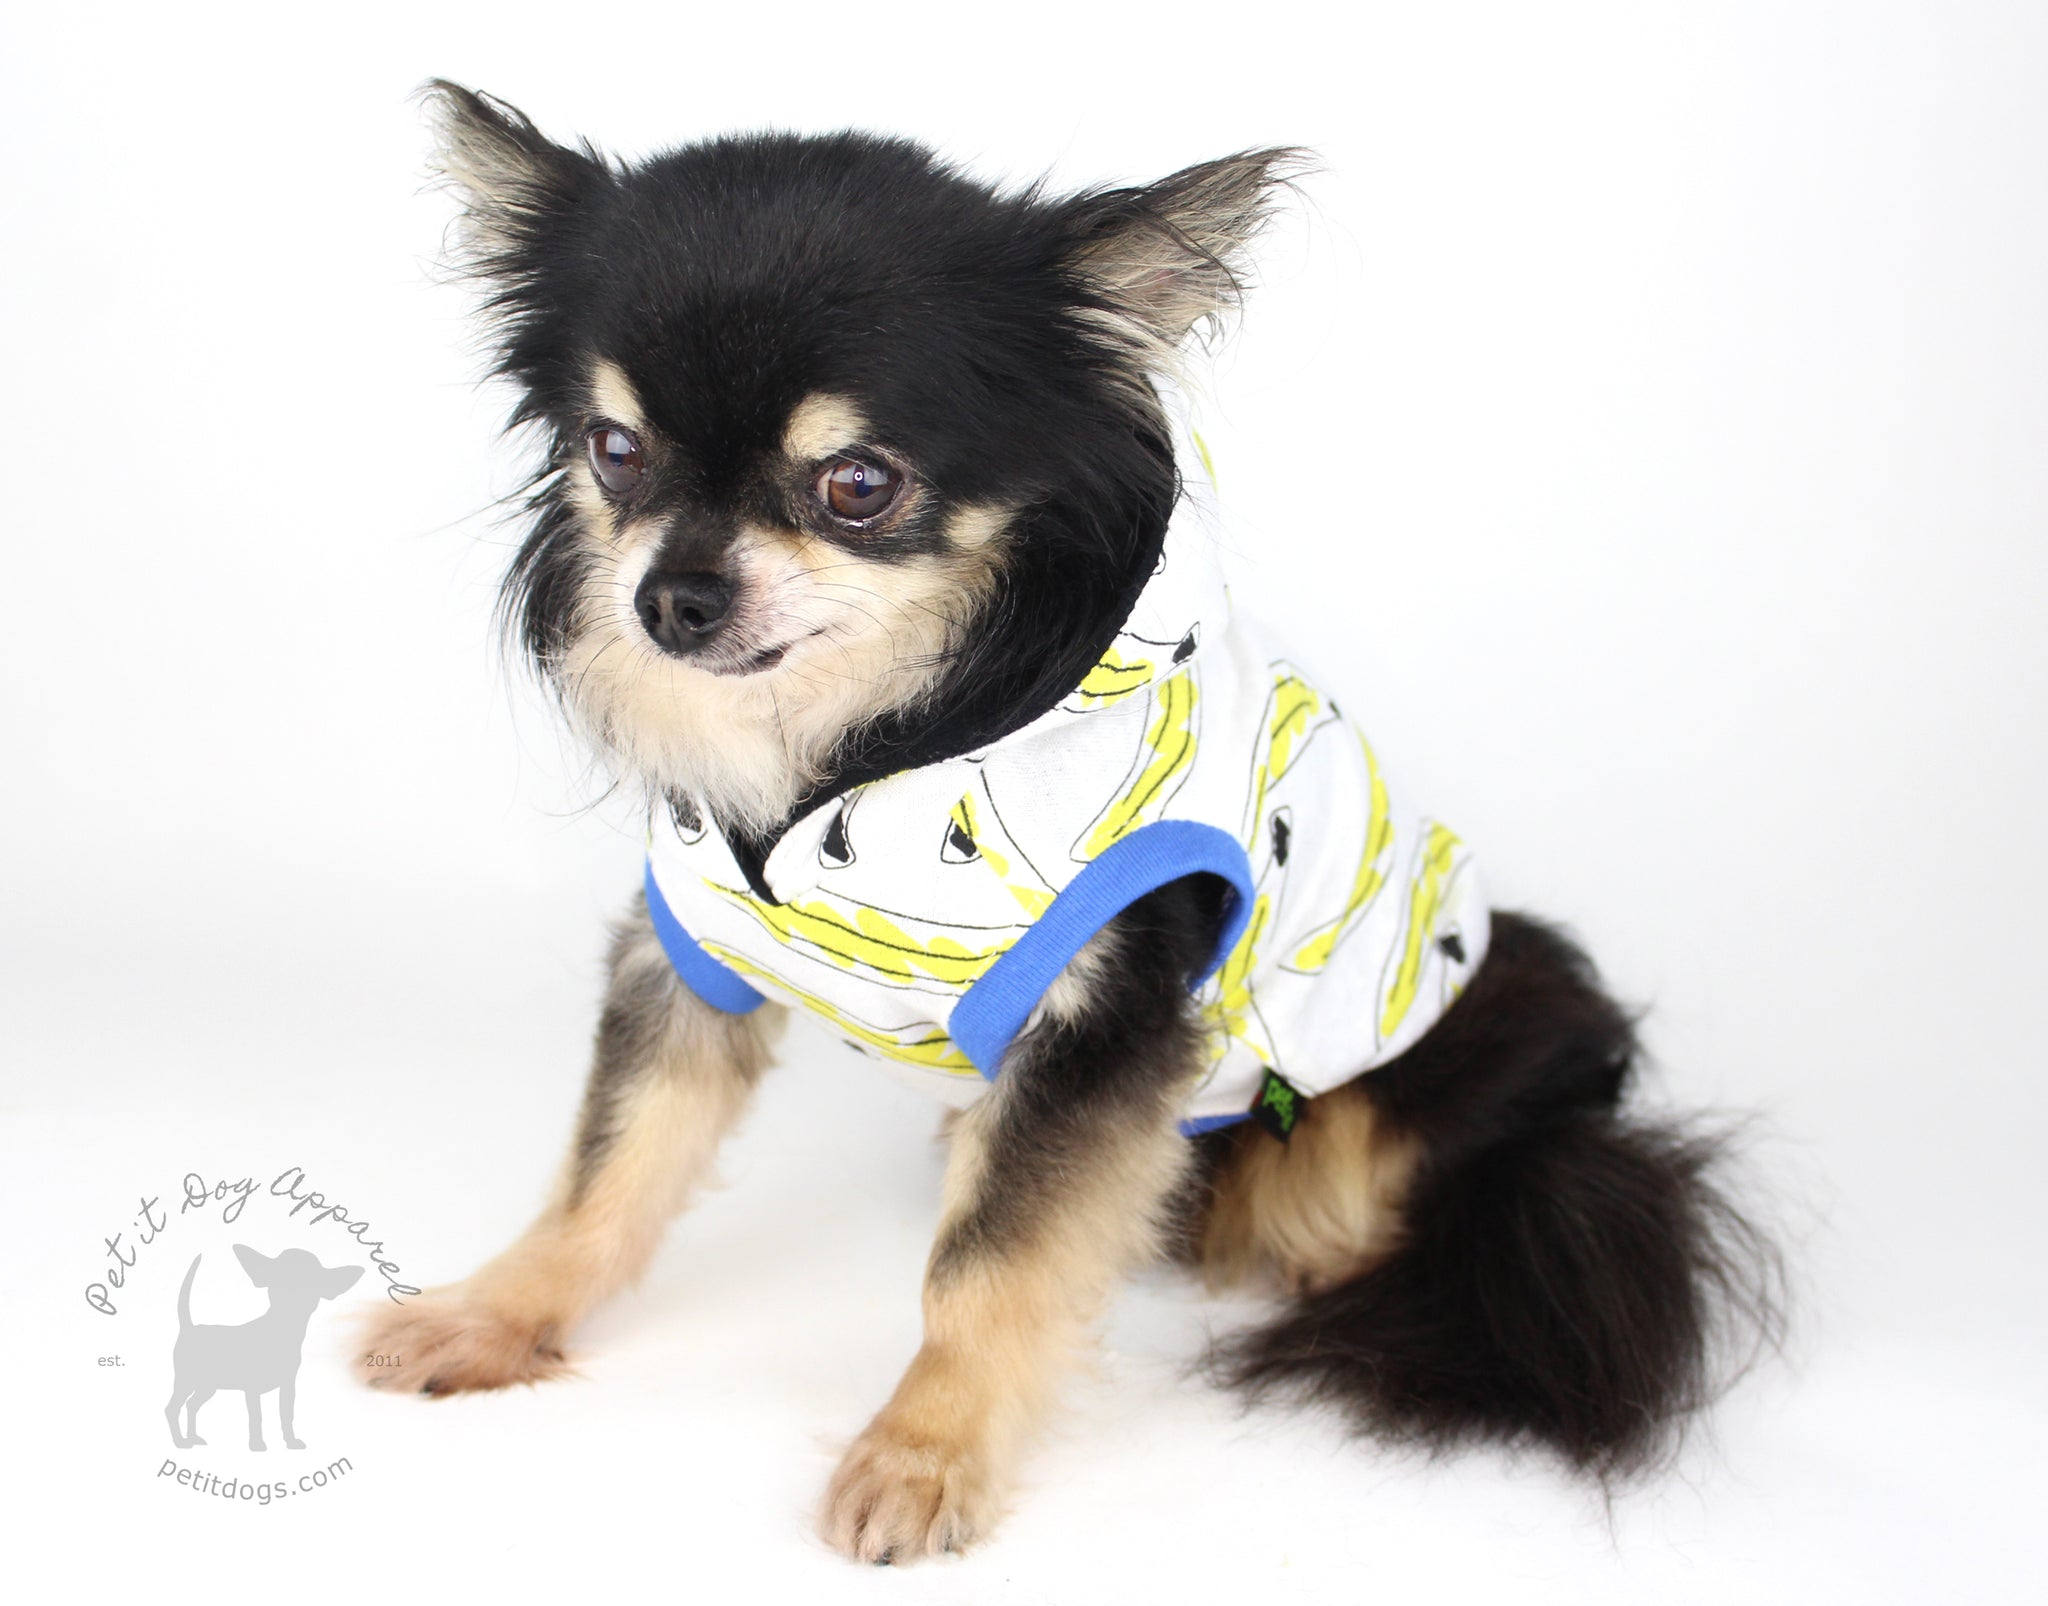 Banana dog hoodie pet it dog apparel